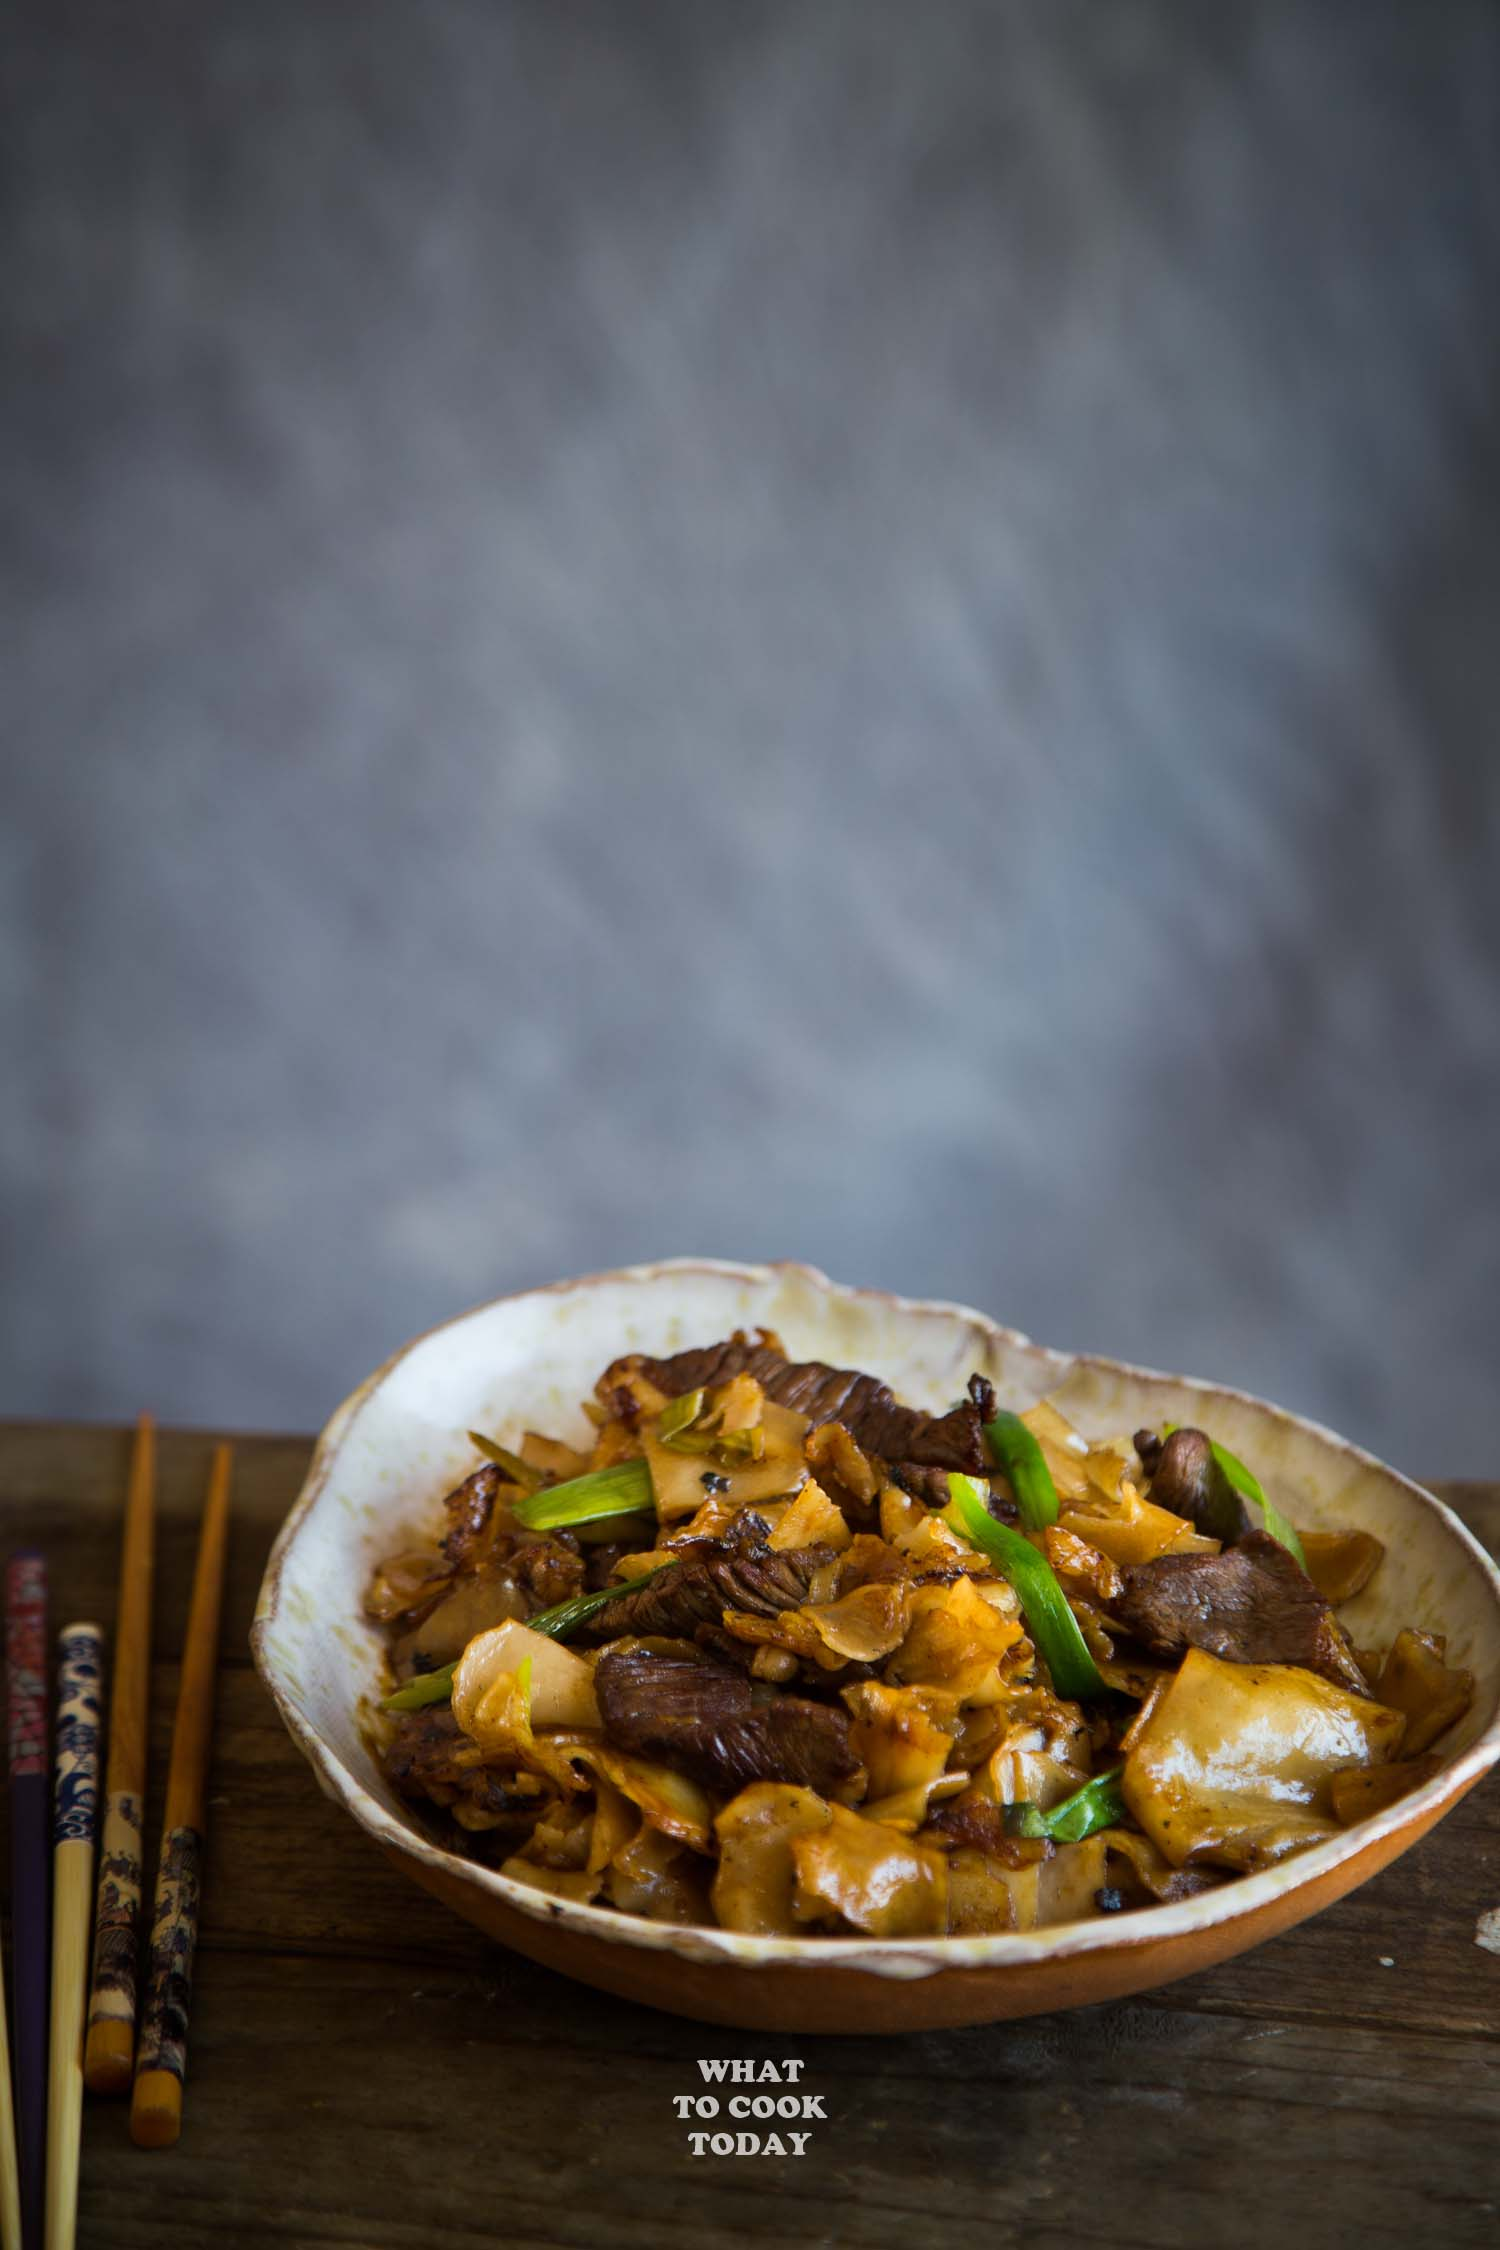 Restaurant-style Beef Chow Fun